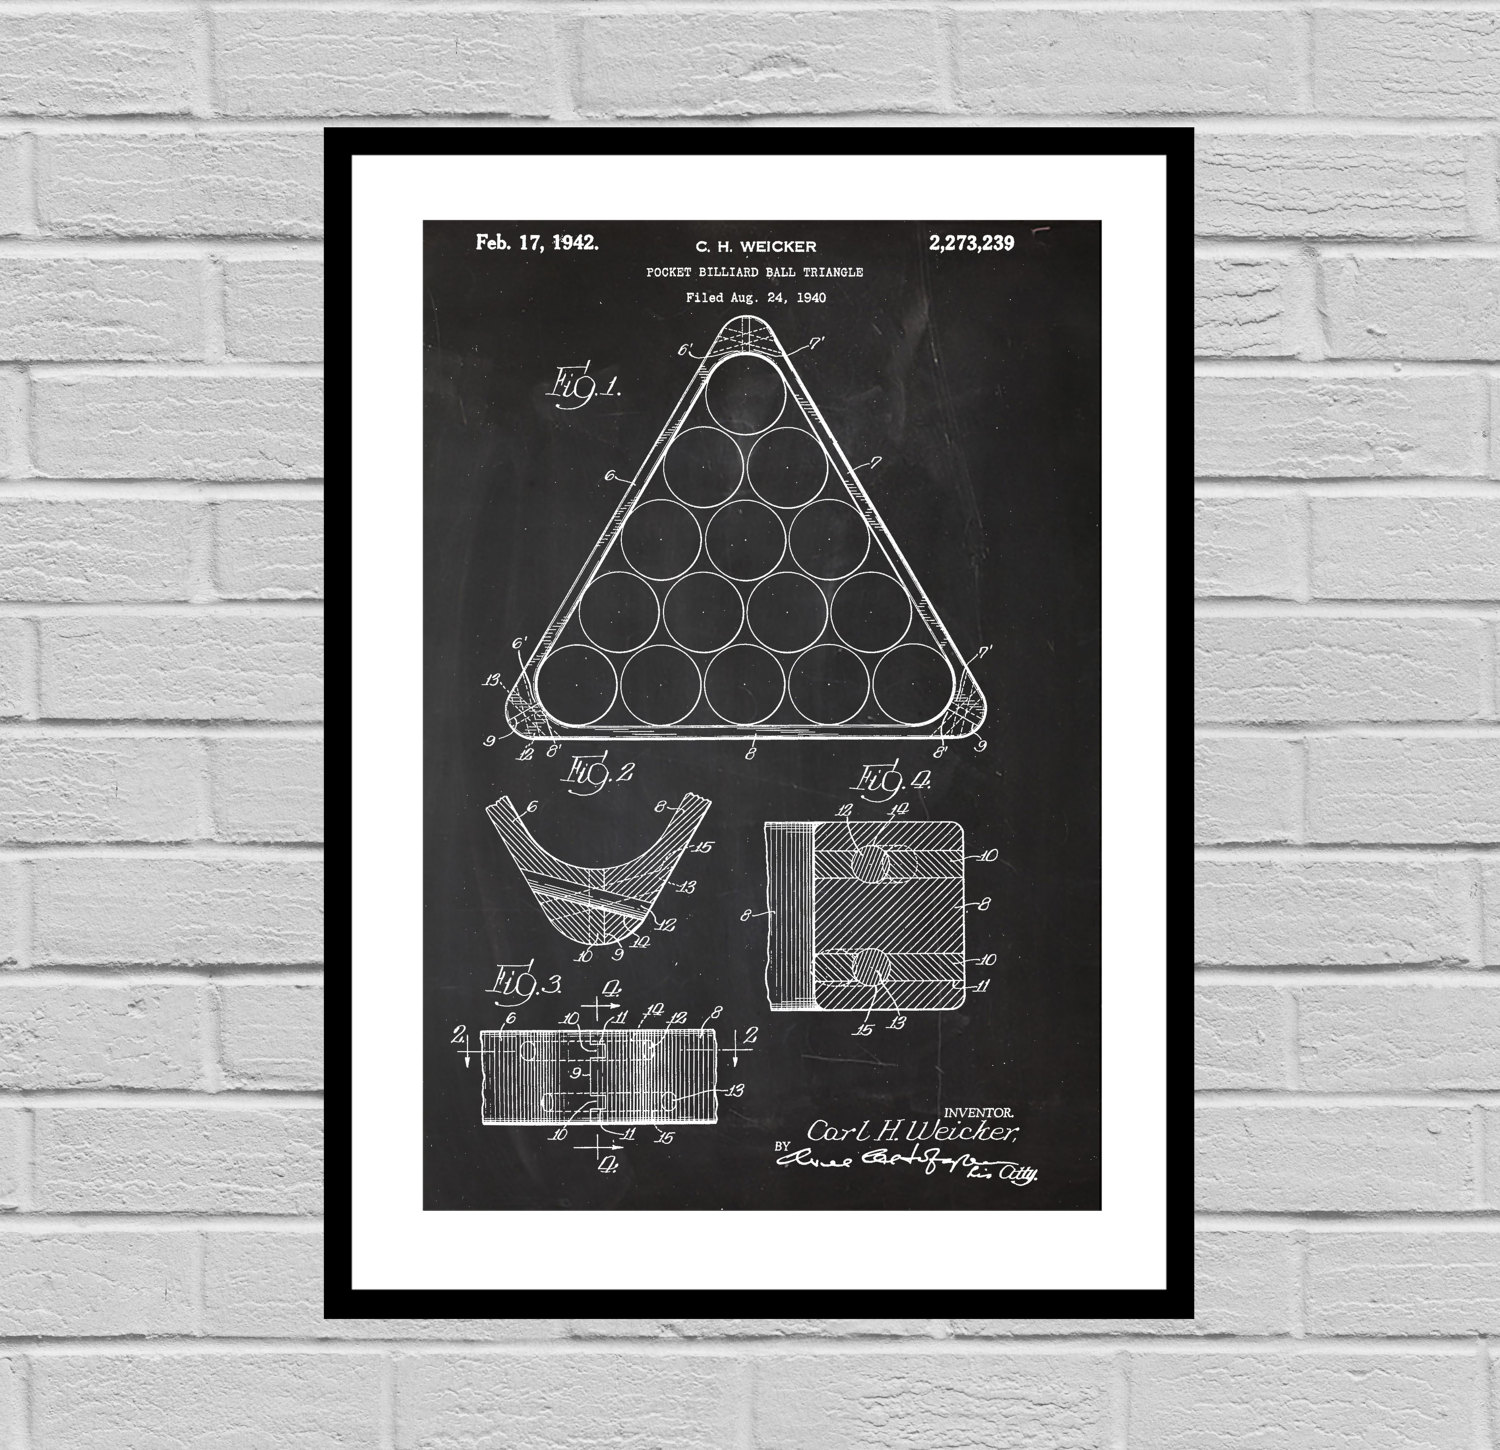 Billiard Table Print, Billiard Table Patent, Billiards, Pool Table, Billiard  Art, Billiards Blueprint, Pool Hall Art, Pool Table